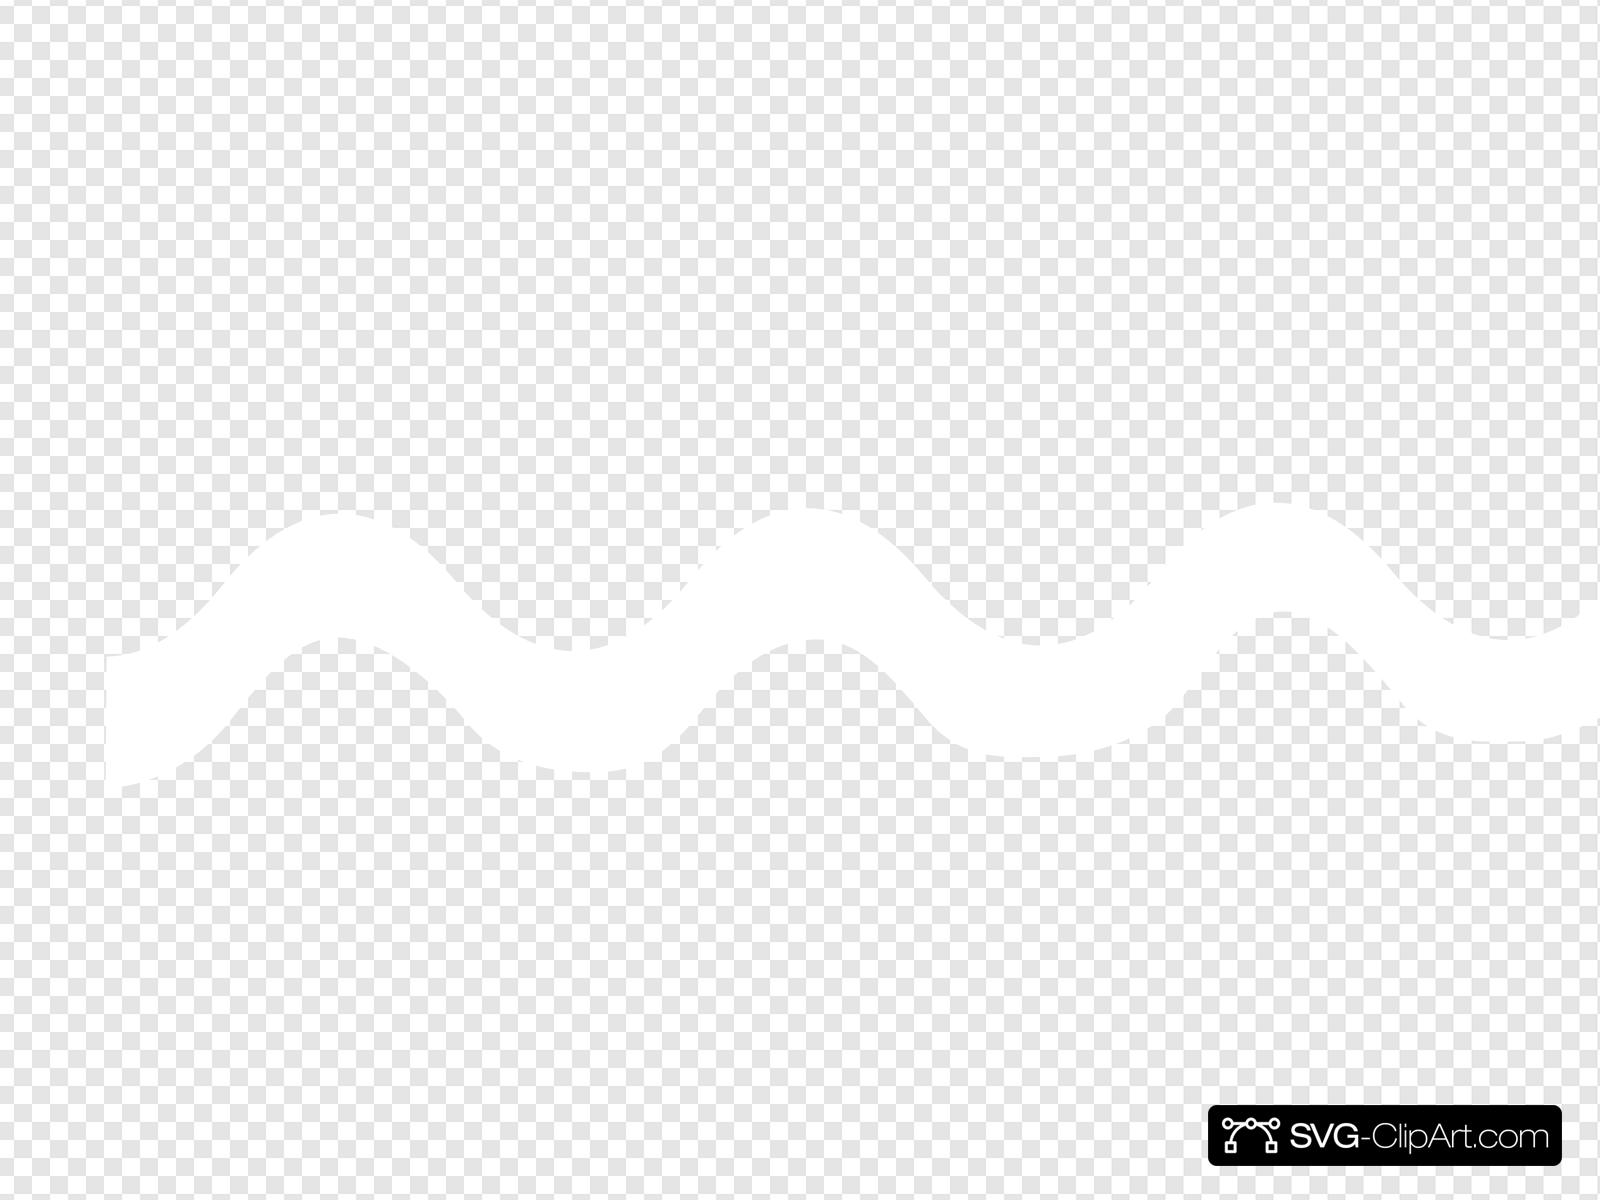 Wavy Line White Thick Clip art, Icon and SVG.